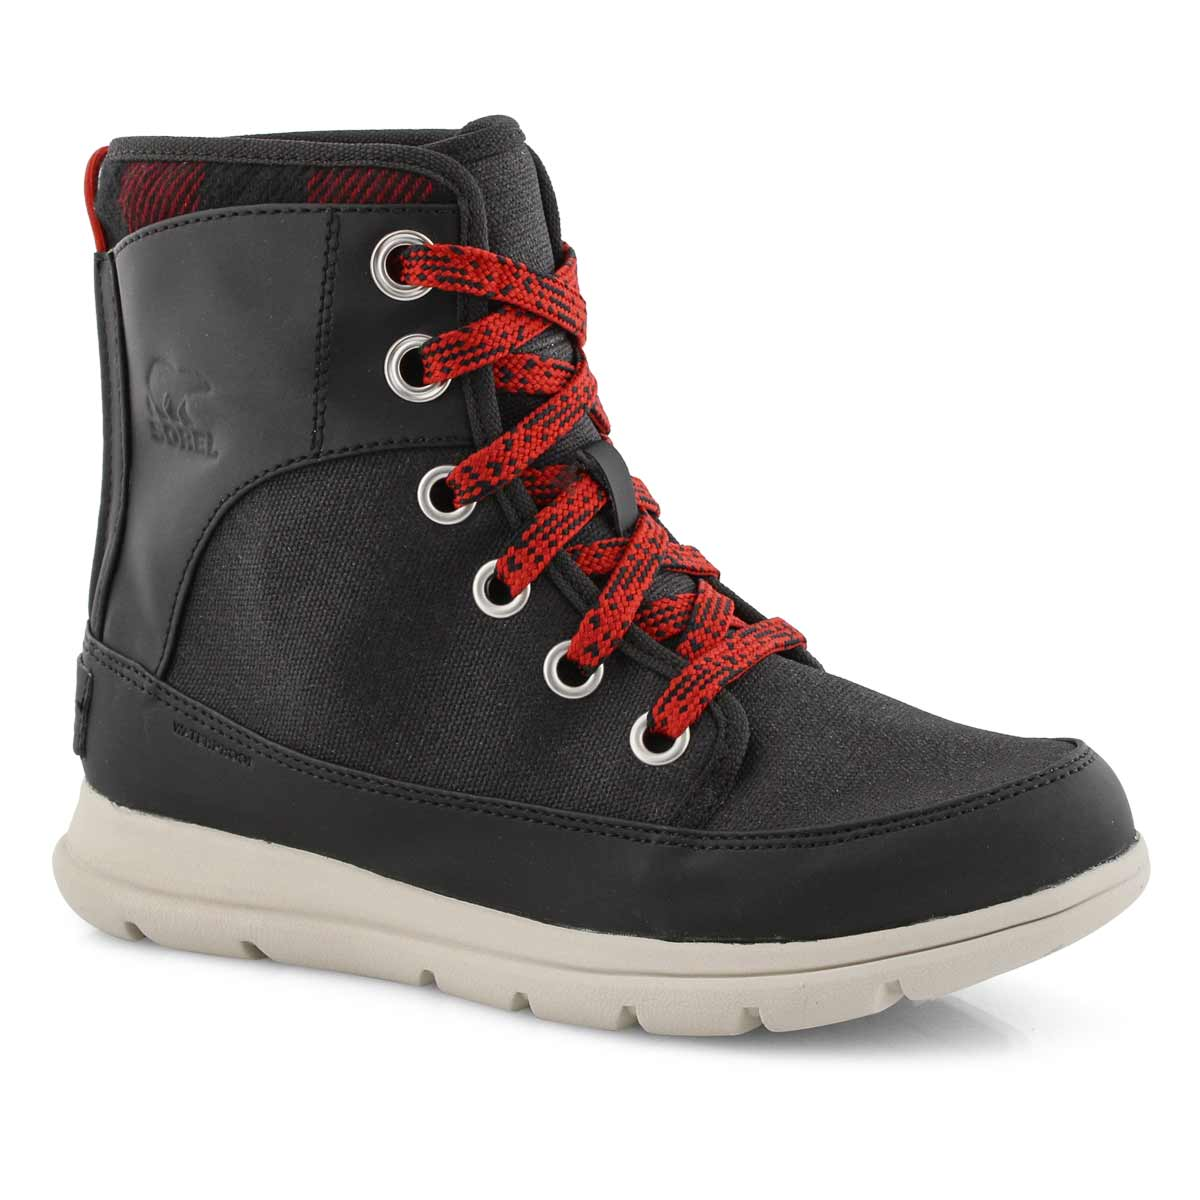 Lds Explorer 1964 black wtpf boot